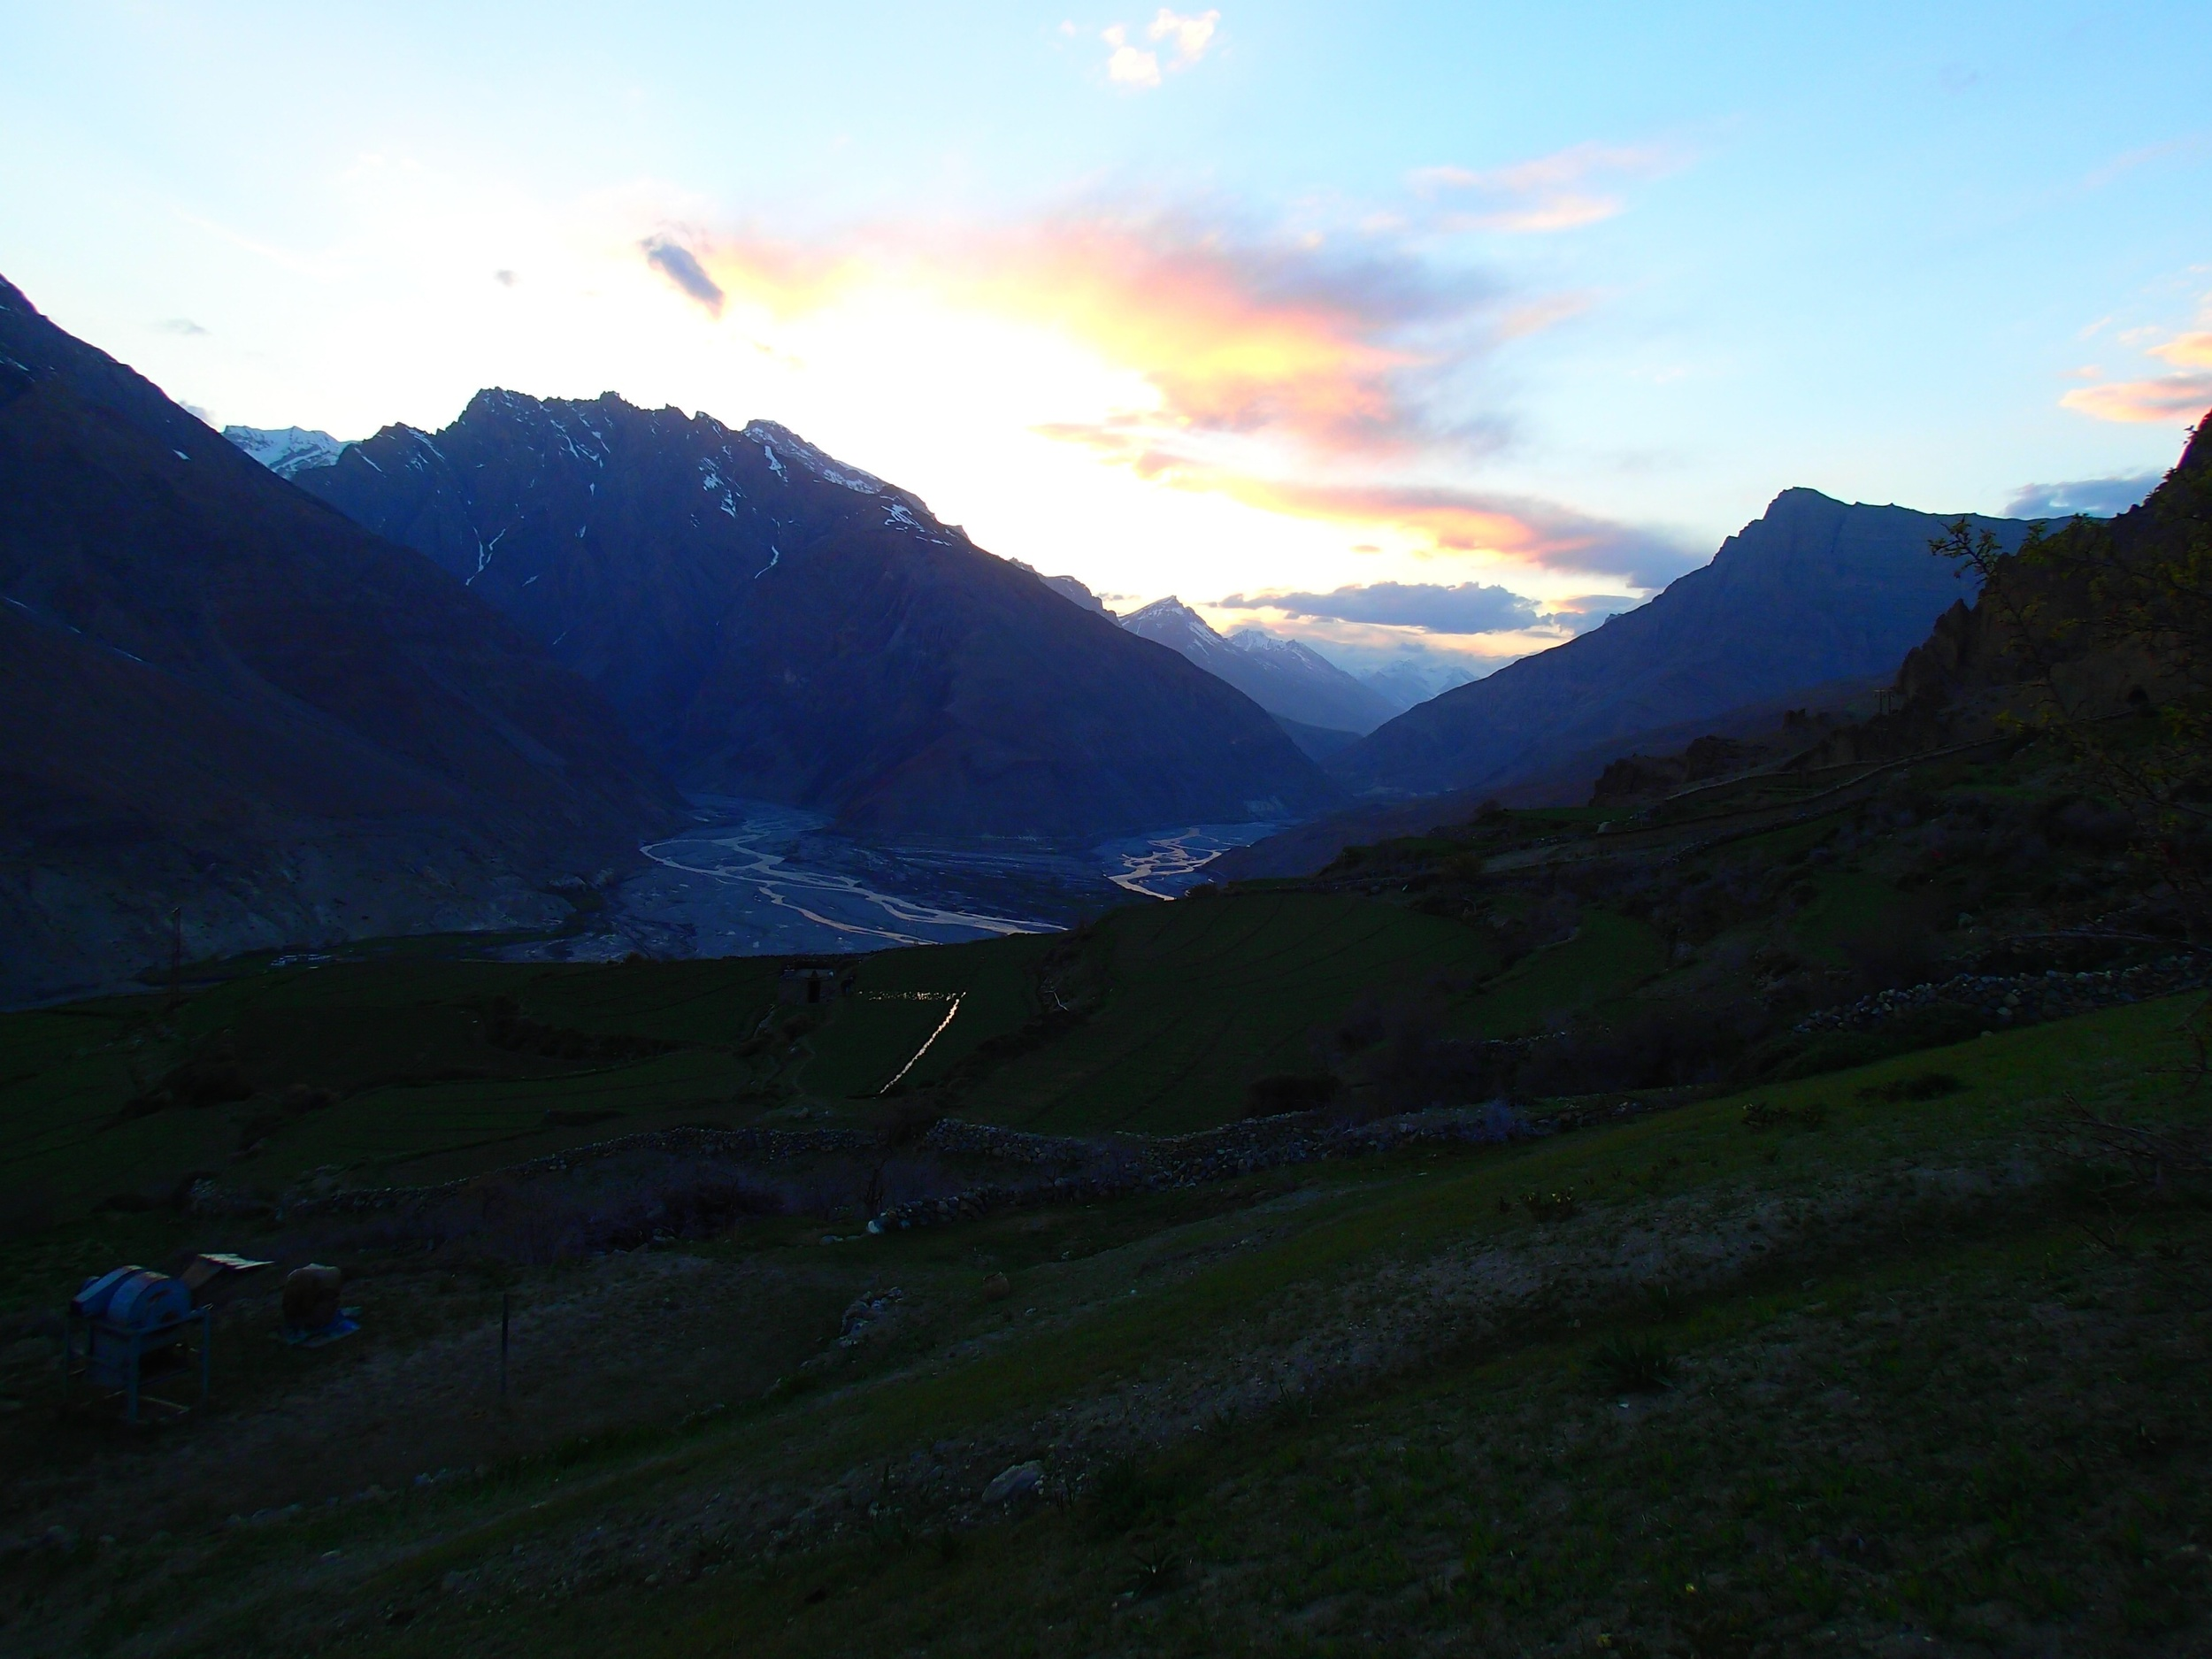 A stunning sunset from the trek up to Dhankar